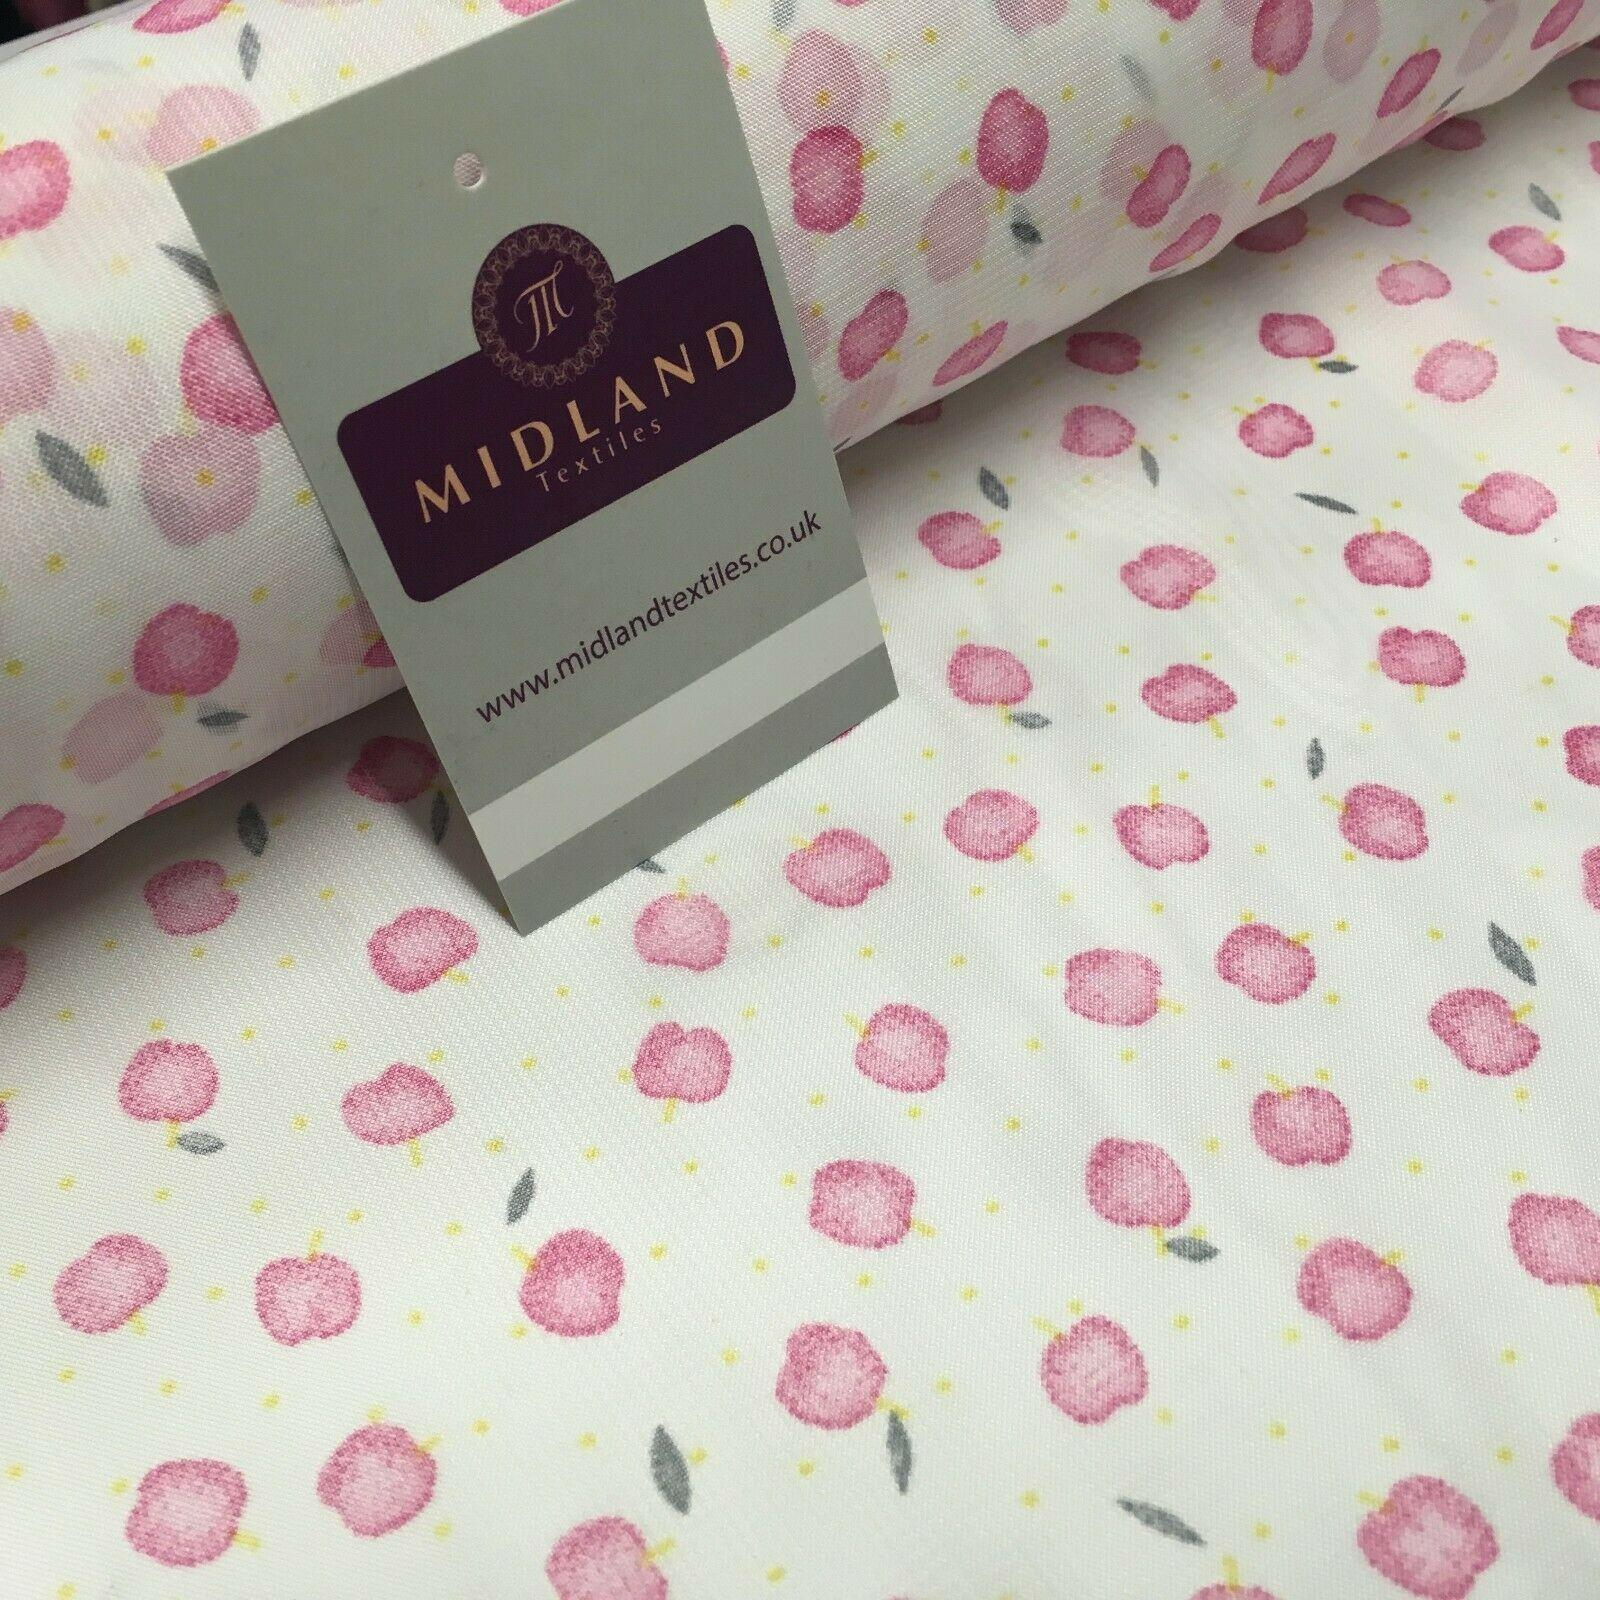 White & Pink apple printed Crepe chiffon Dress Fabric 150 cm Wide MK1190-1 Mtex